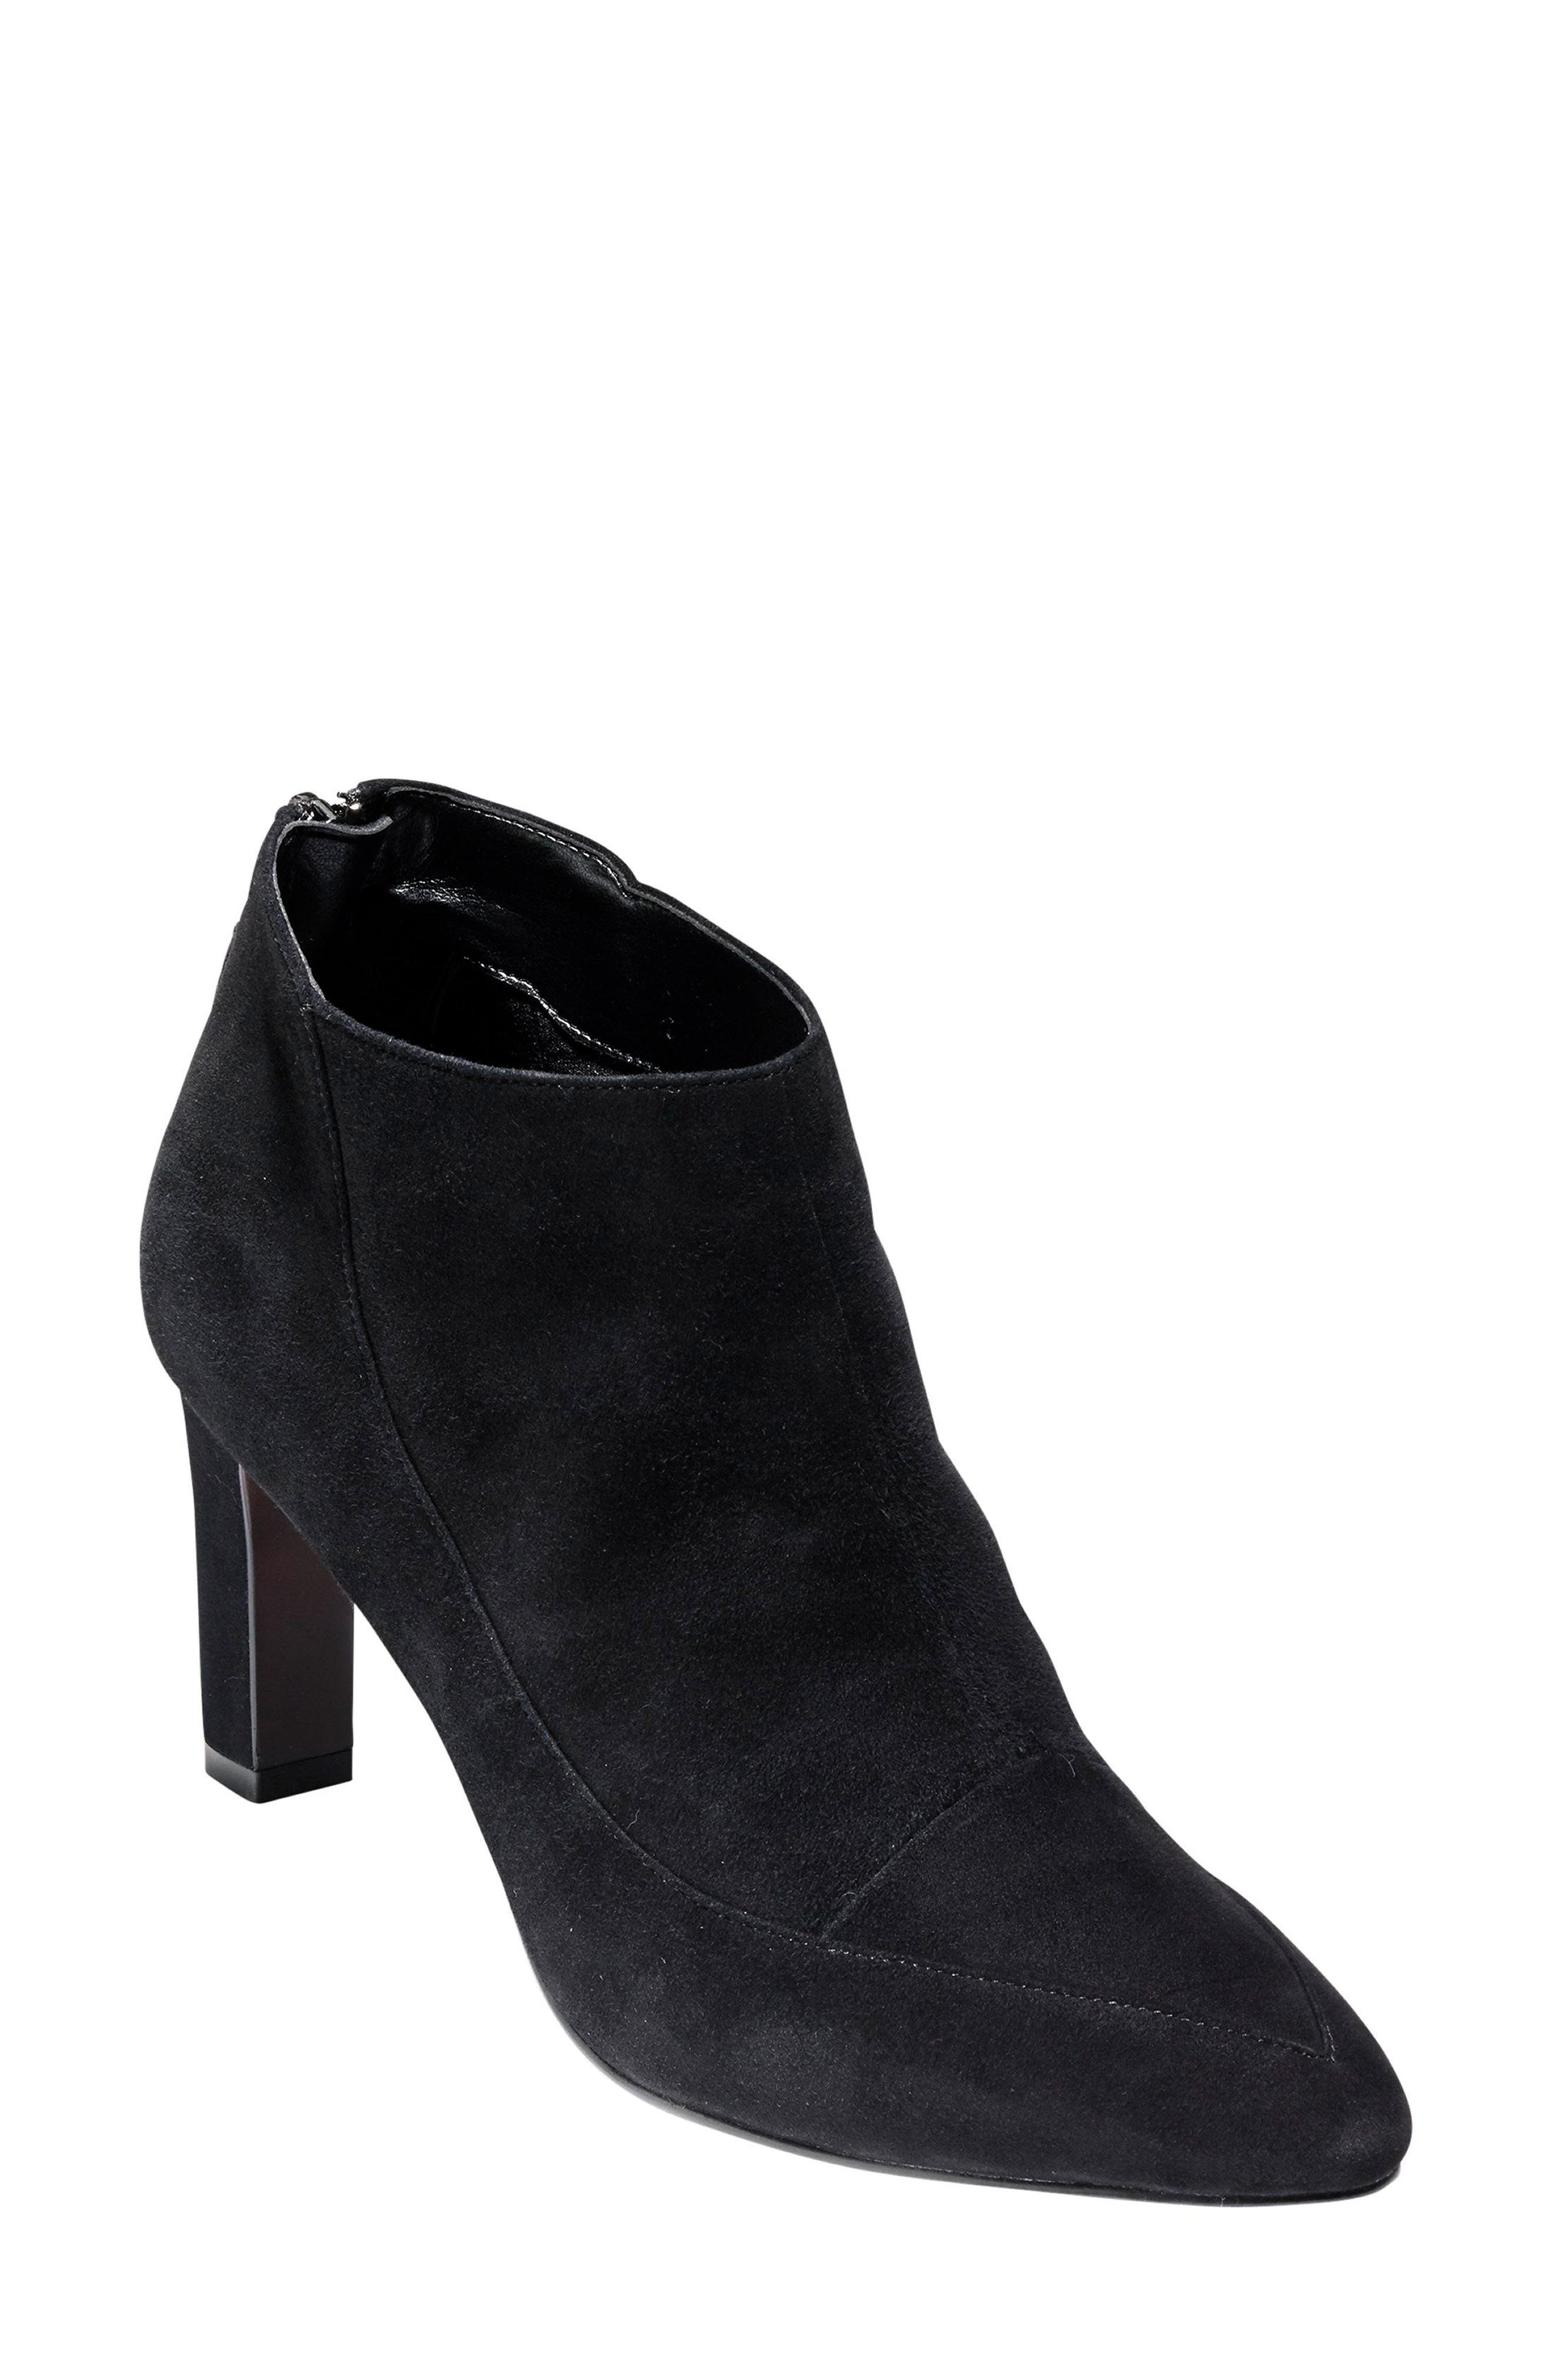 Arlean Pointy Toe Bootie,                             Main thumbnail 1, color,                             001